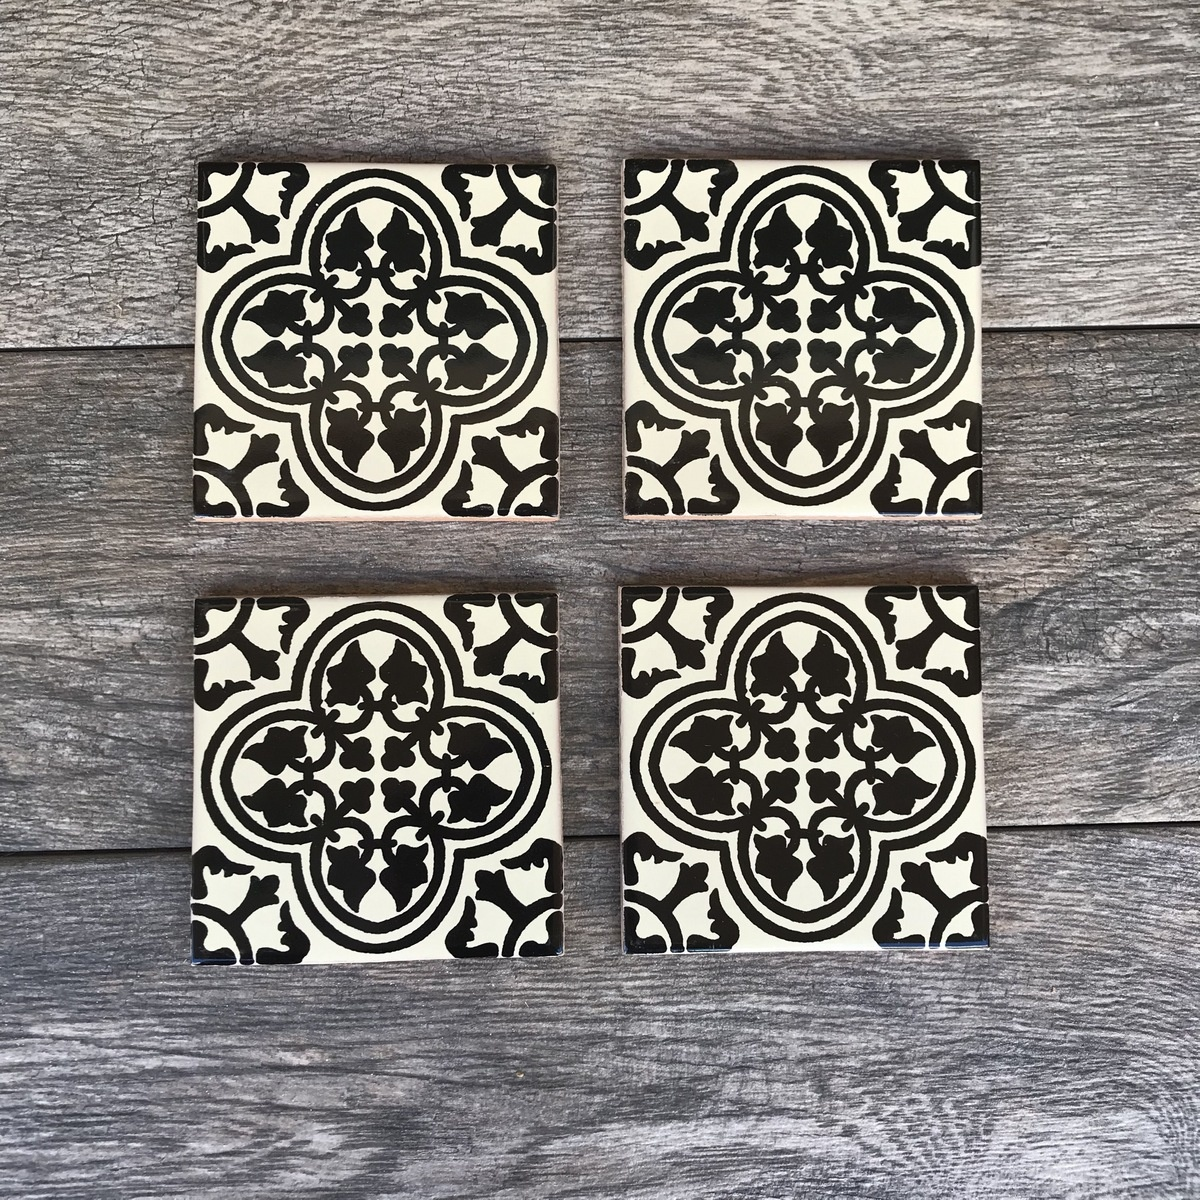 Stencil-painted tile coasters